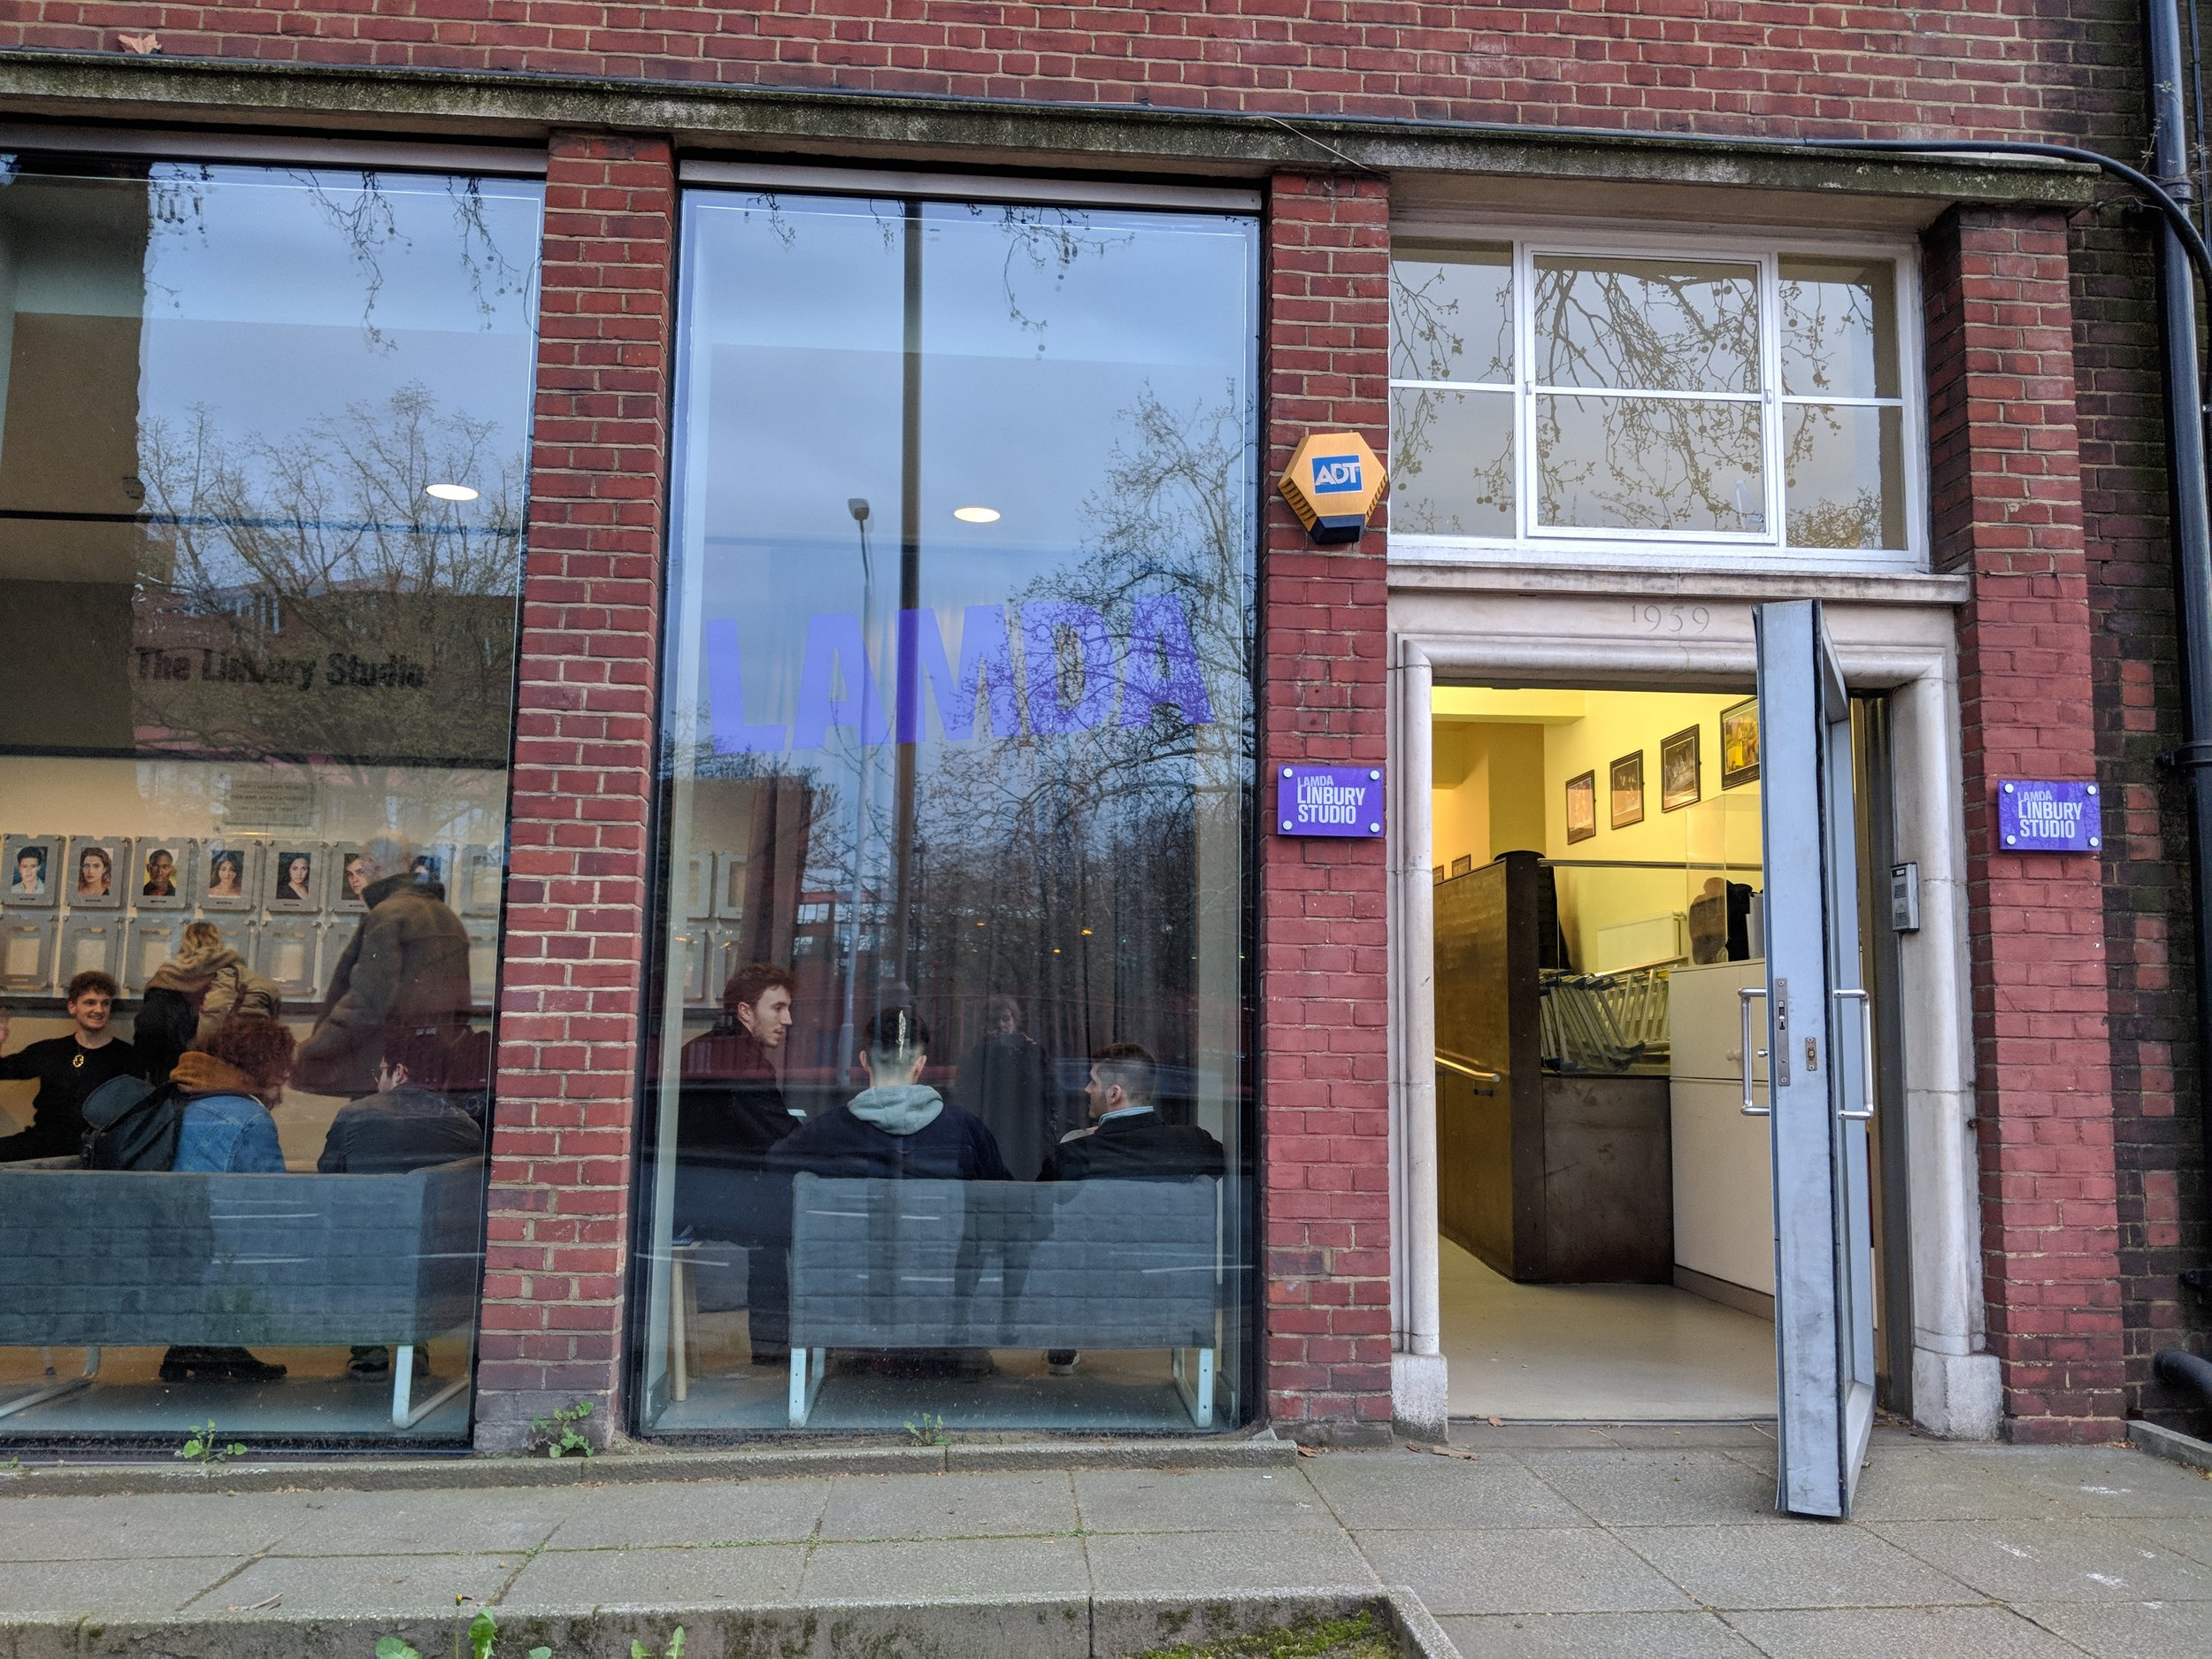 LAMDA(The Linbury Studio) - visited 04/04/2019